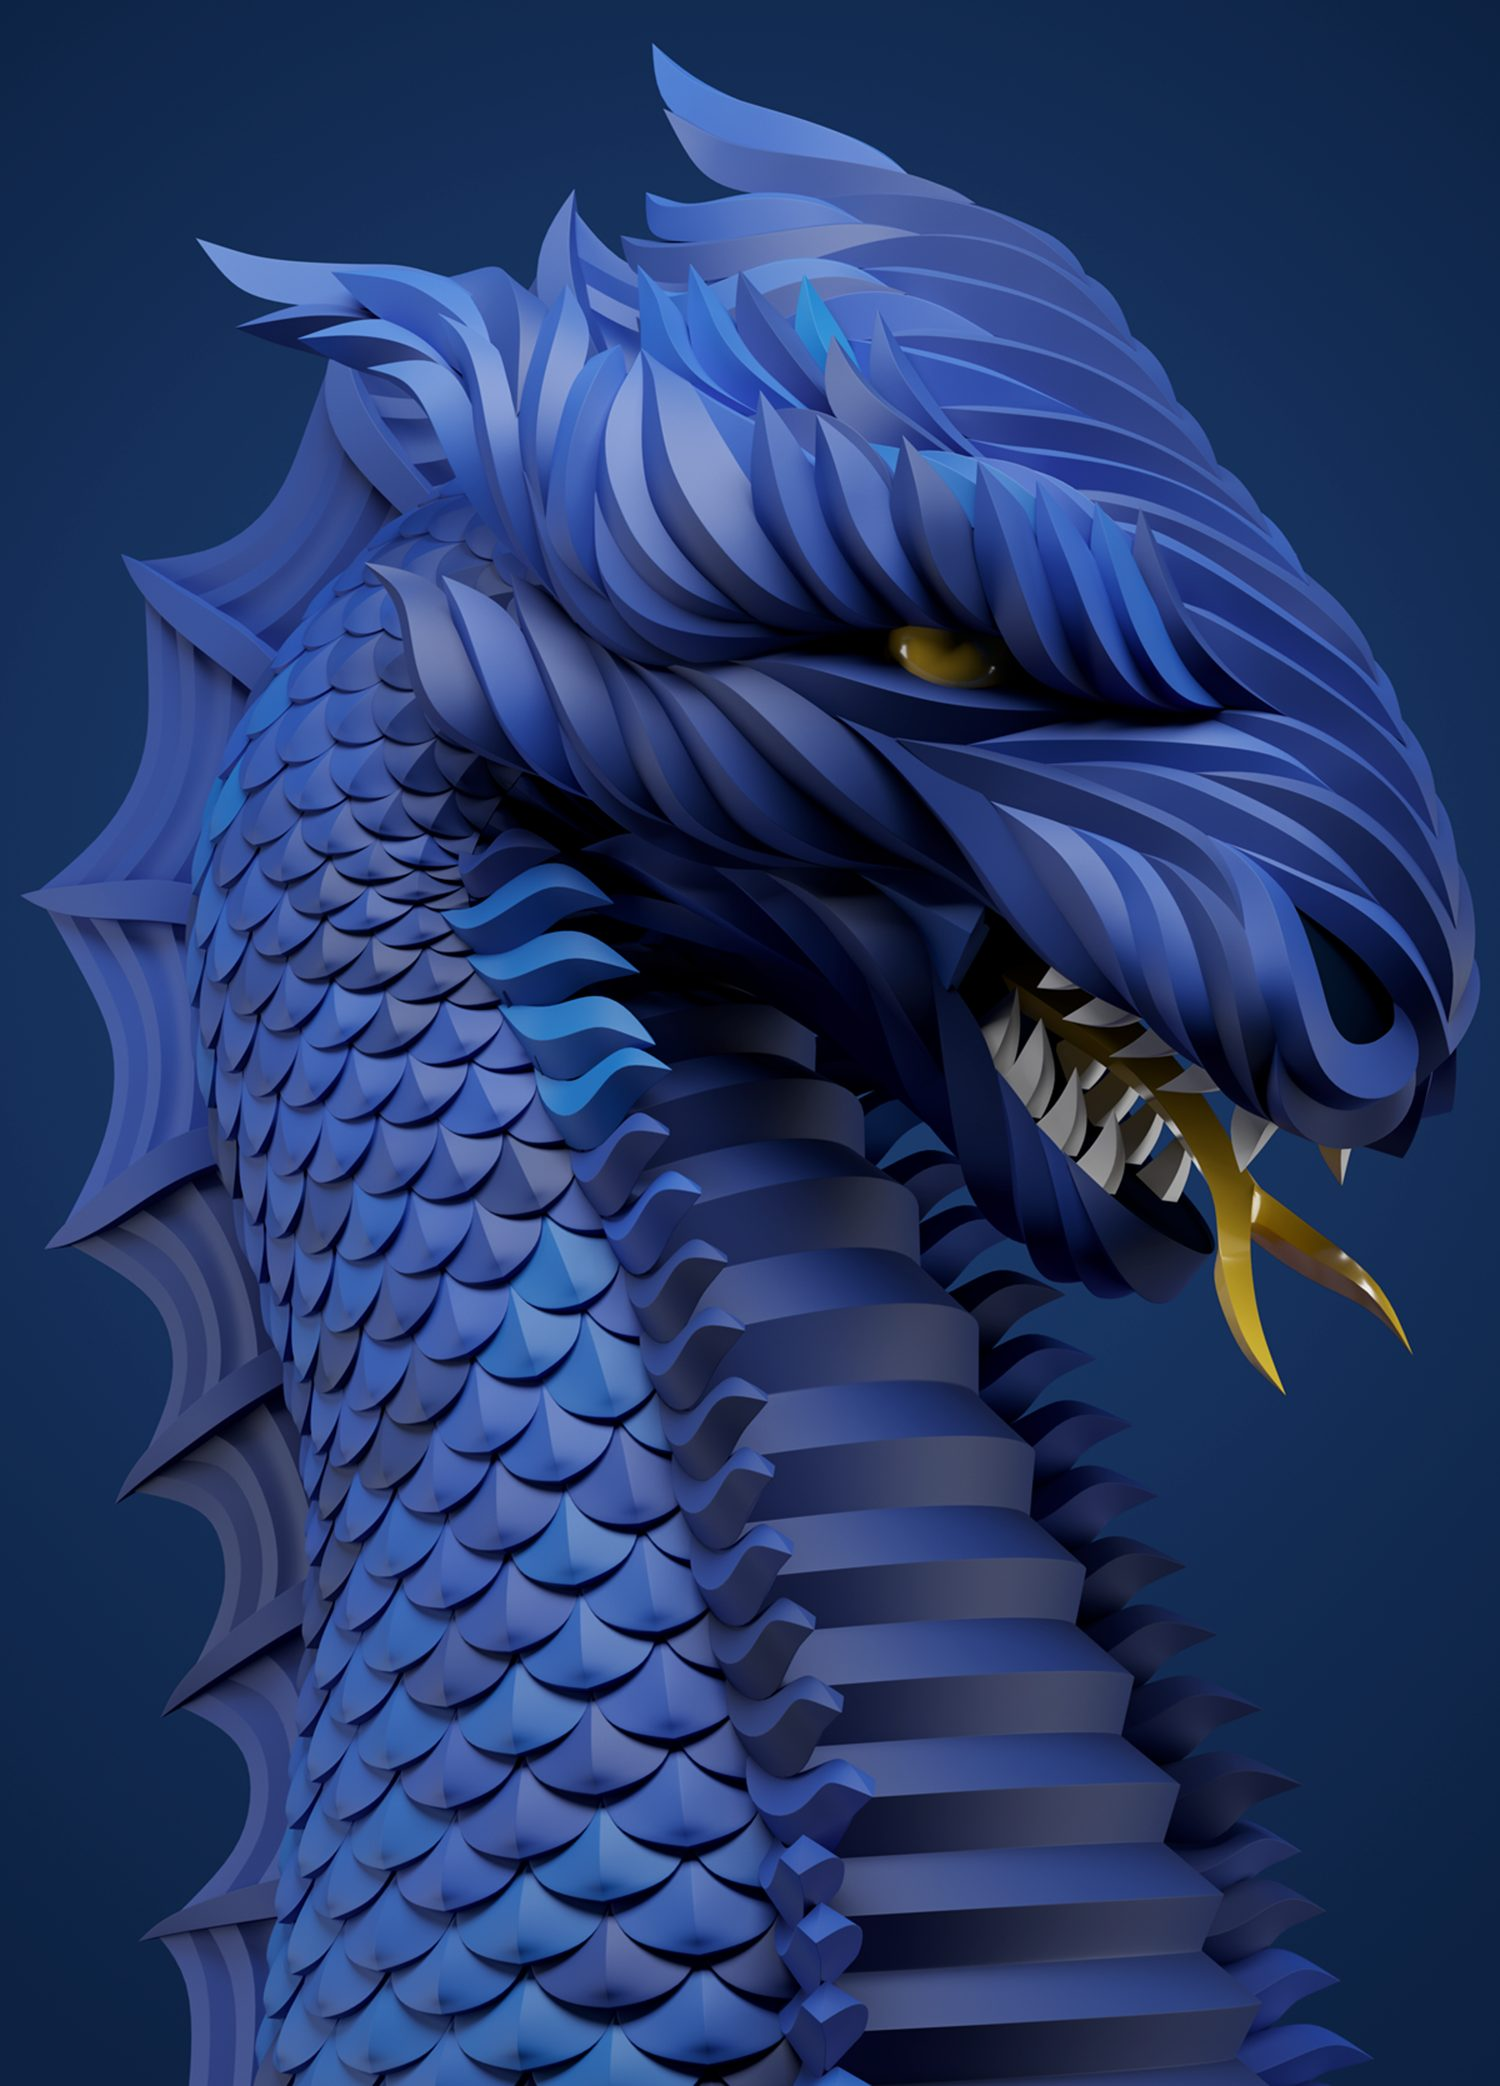 Blue dragon, digital art